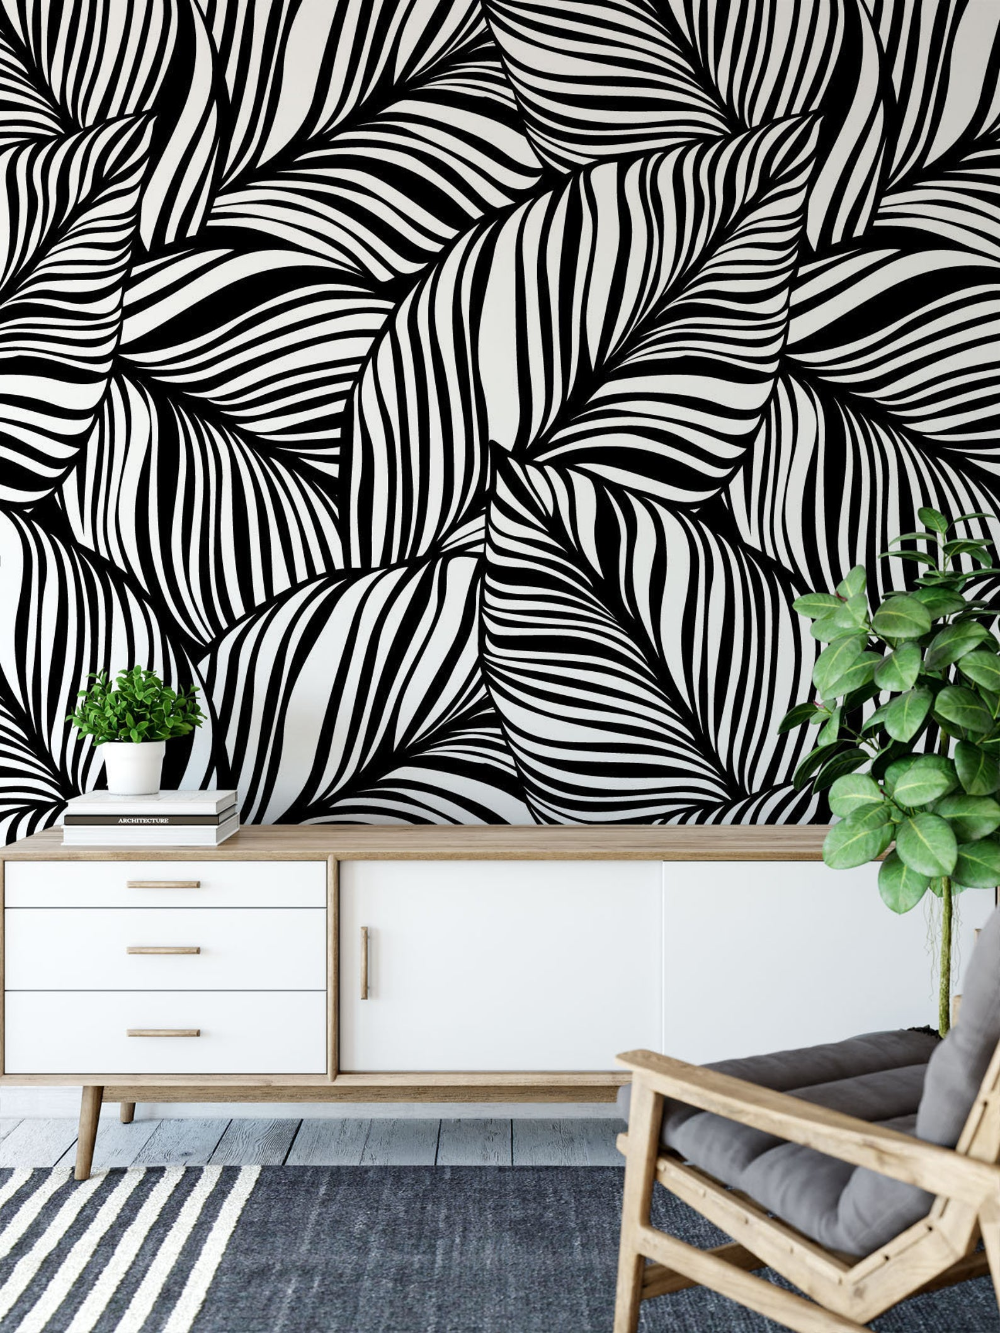 Minimalist Removable Wallpaper Abstract Wallpaper Modern Etsy Removable Wallpaper Modern Wallpaper Abstract Wallpaper